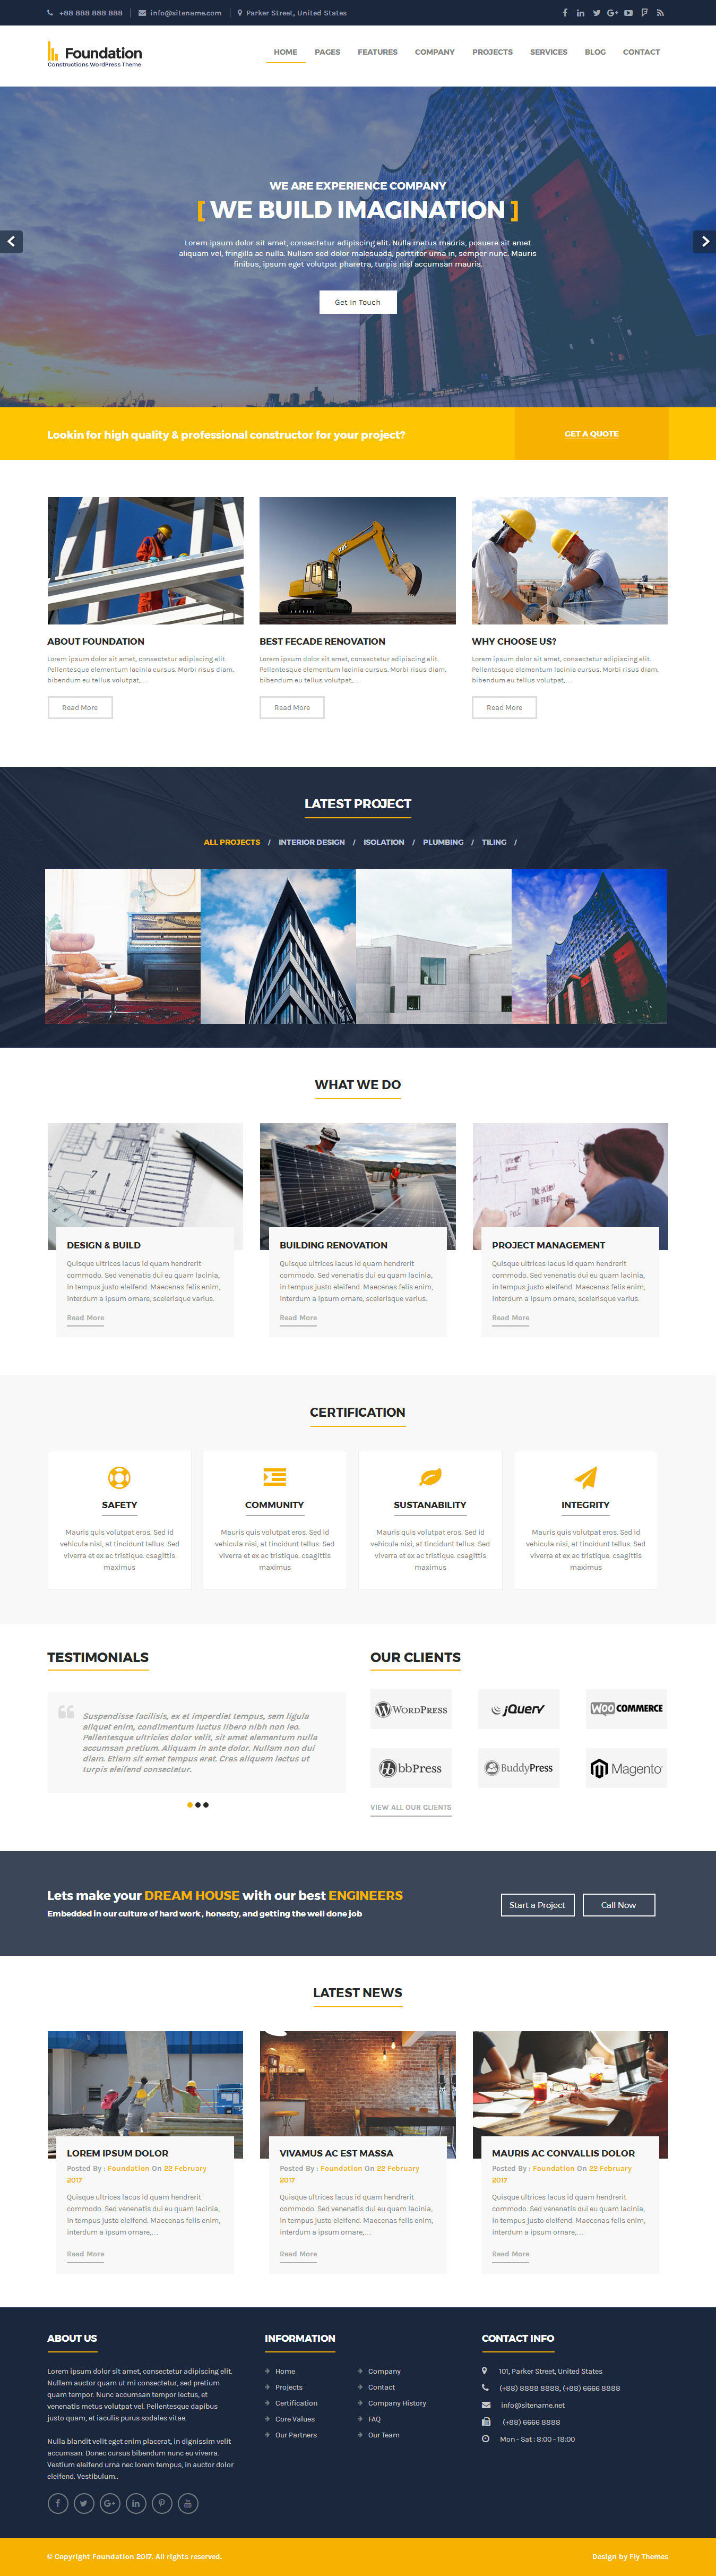 foundation-wordpress-theme